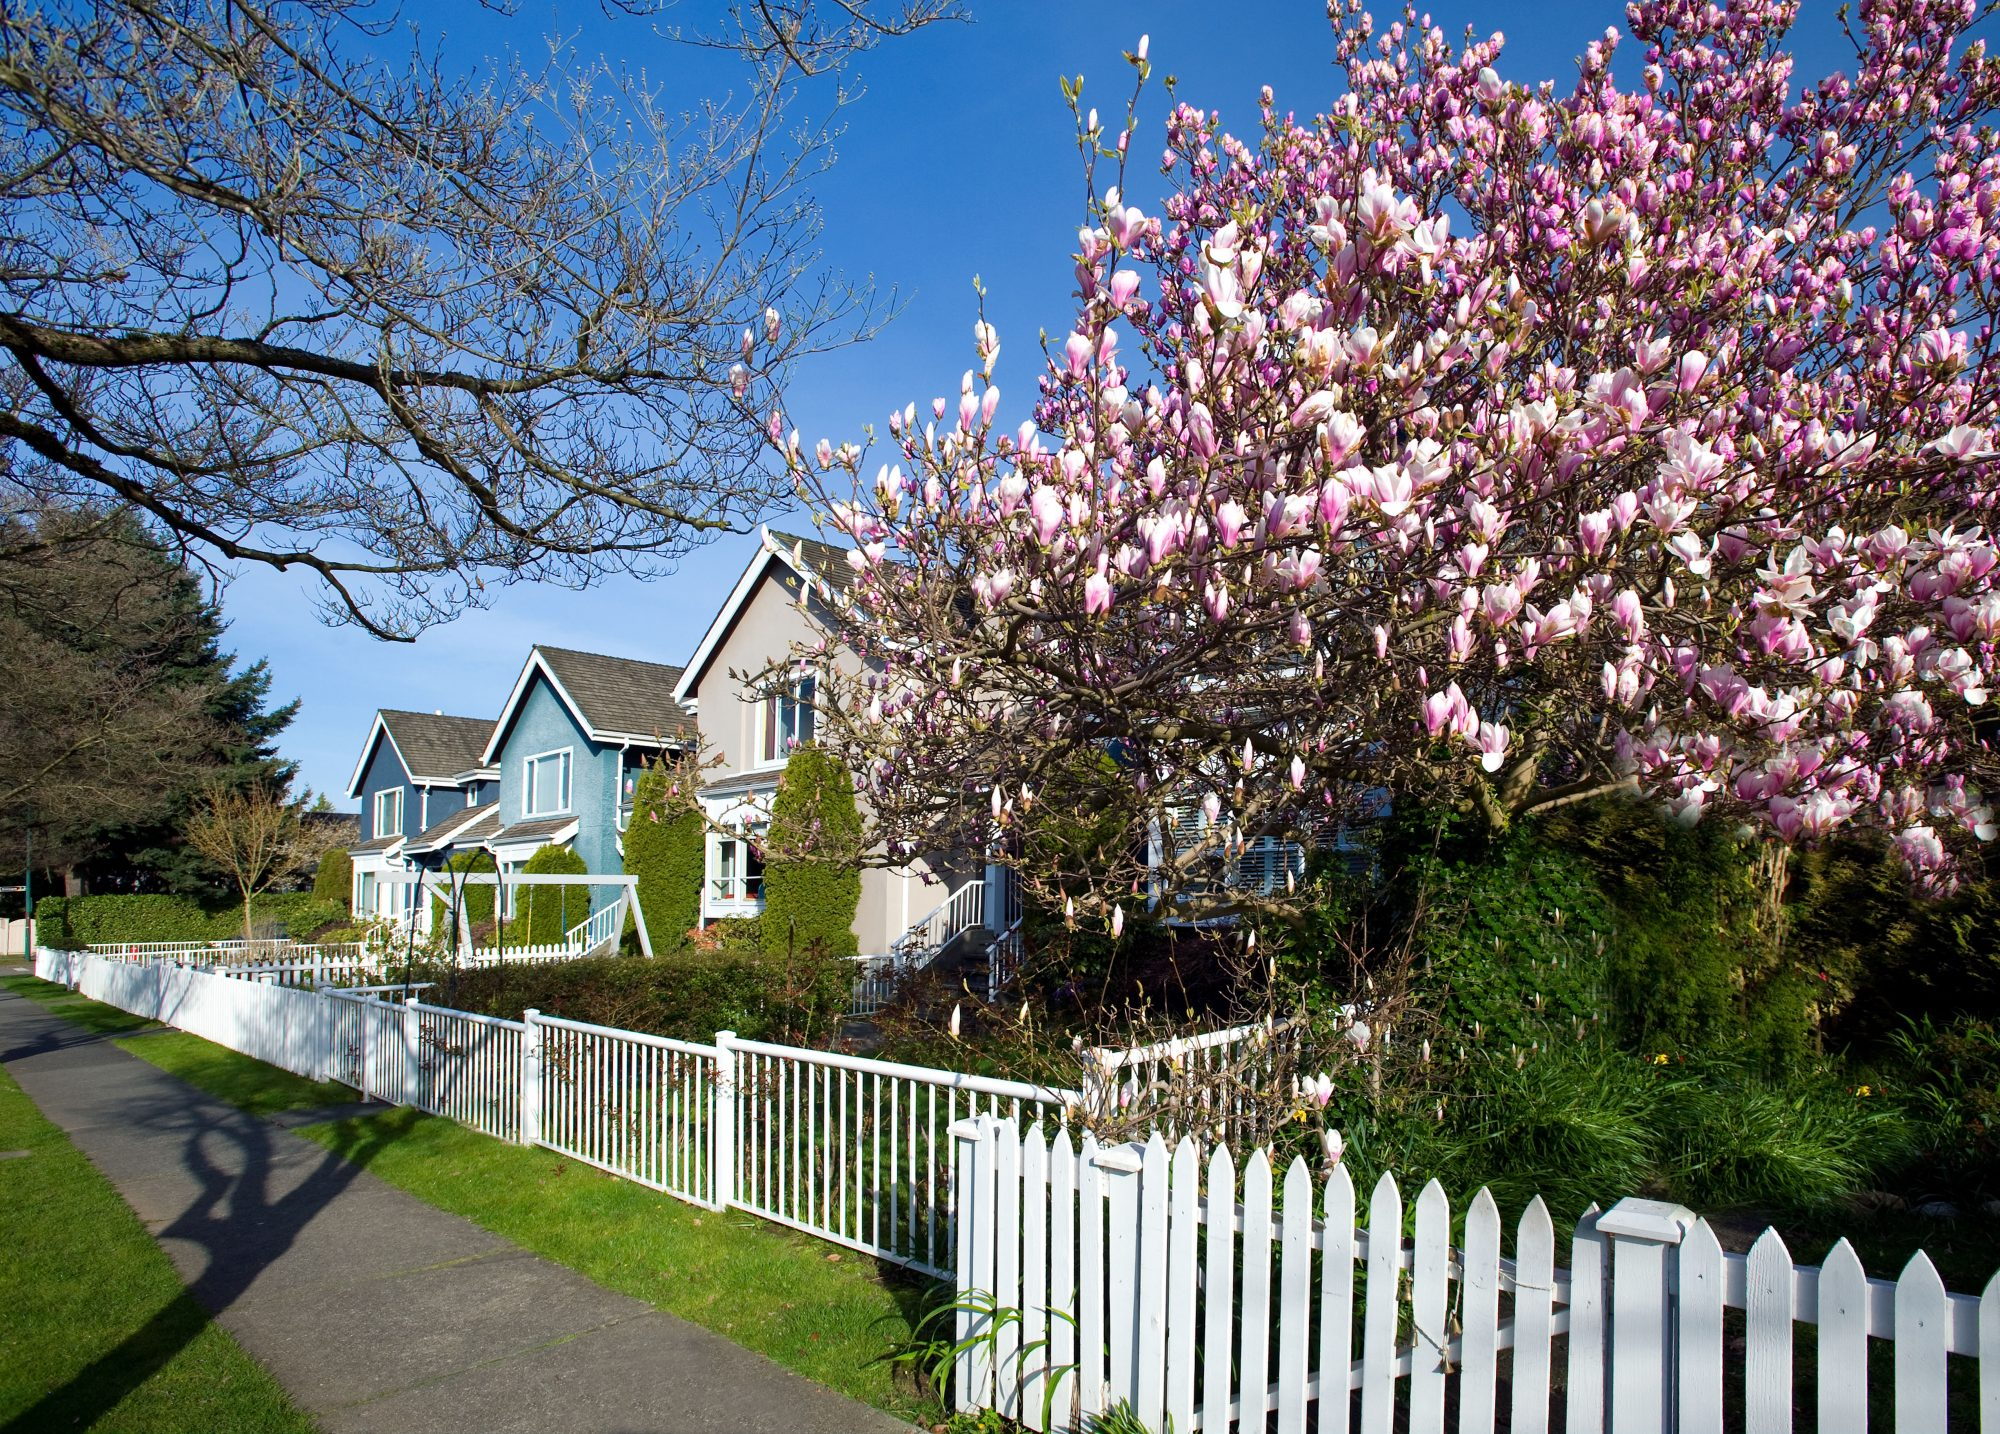 Blooming trees along a Kerrisdale neighborhood street, Vancouver, BC Canada